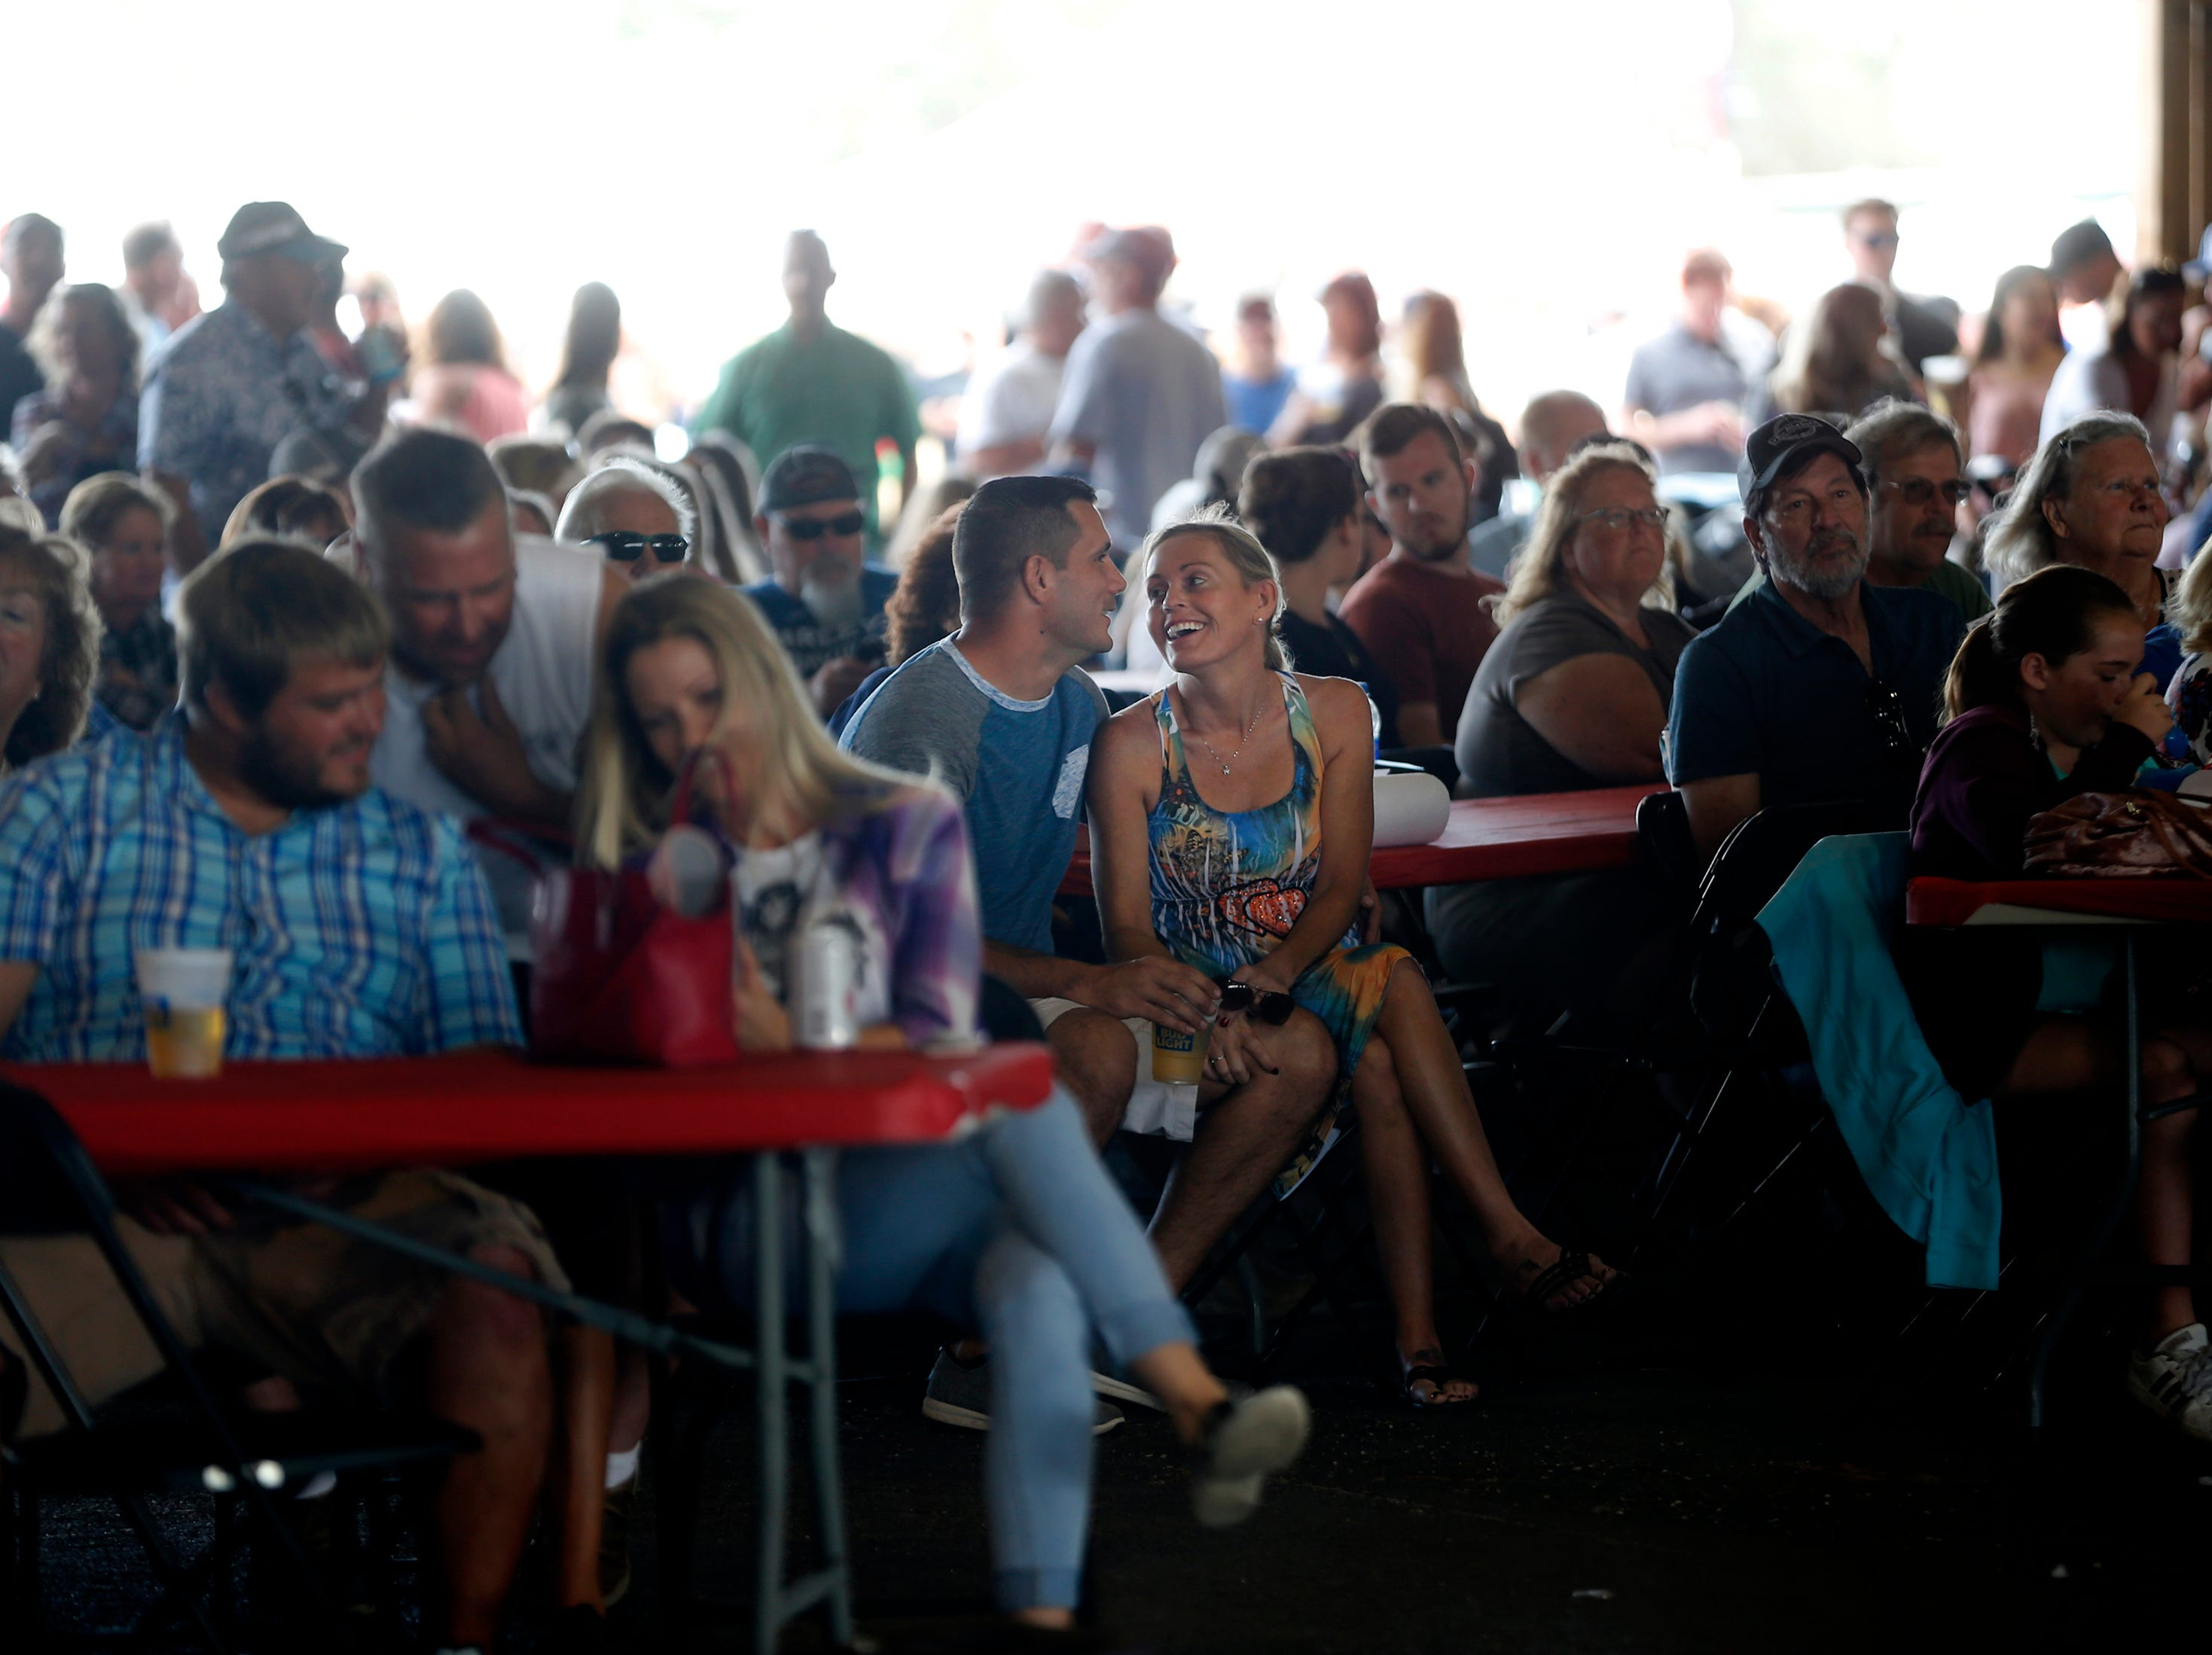 Festivalgoers enjoy music by the Ben Allen Band during the 7th Annual Big Swamp Smoke Off & Craft Beer Festival on Saturday, Jan. 5, 2019, at the Collier County Fairgrounds.